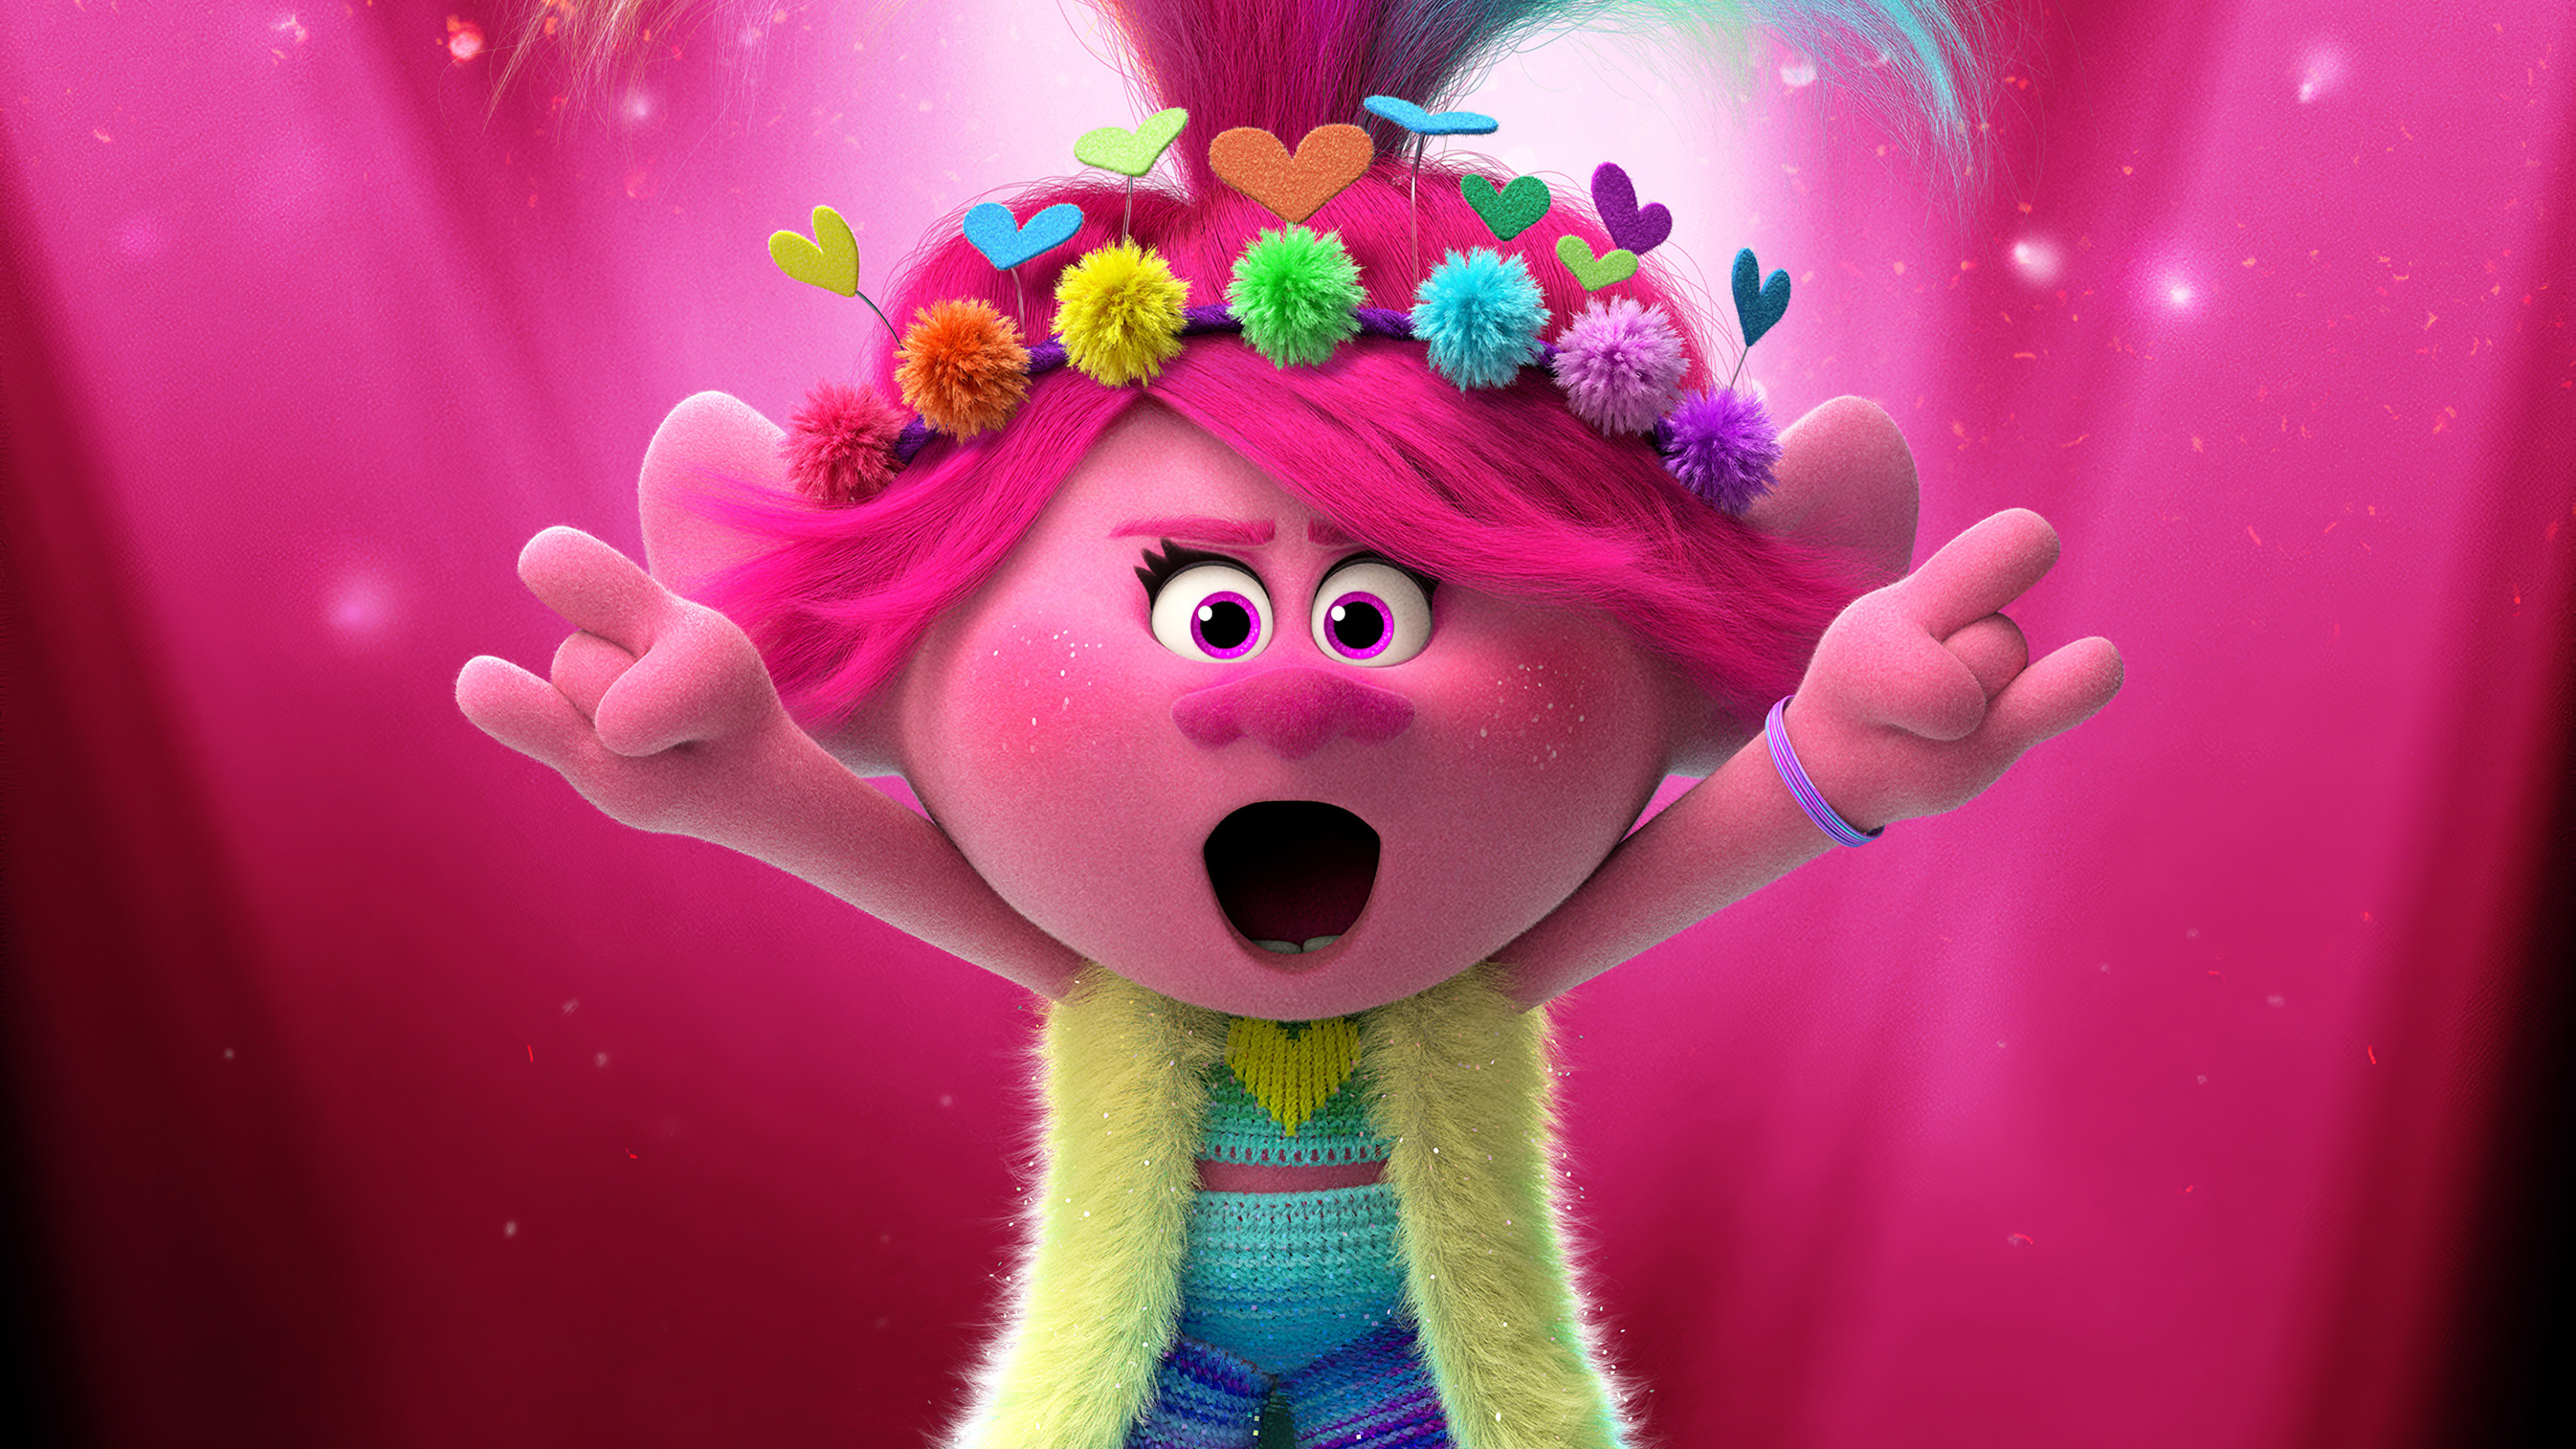 trolls world tour 1589578956 - Trolls World Tour - Trolls World Tour wallpapers, Trolls World Tour 4k wallpapers